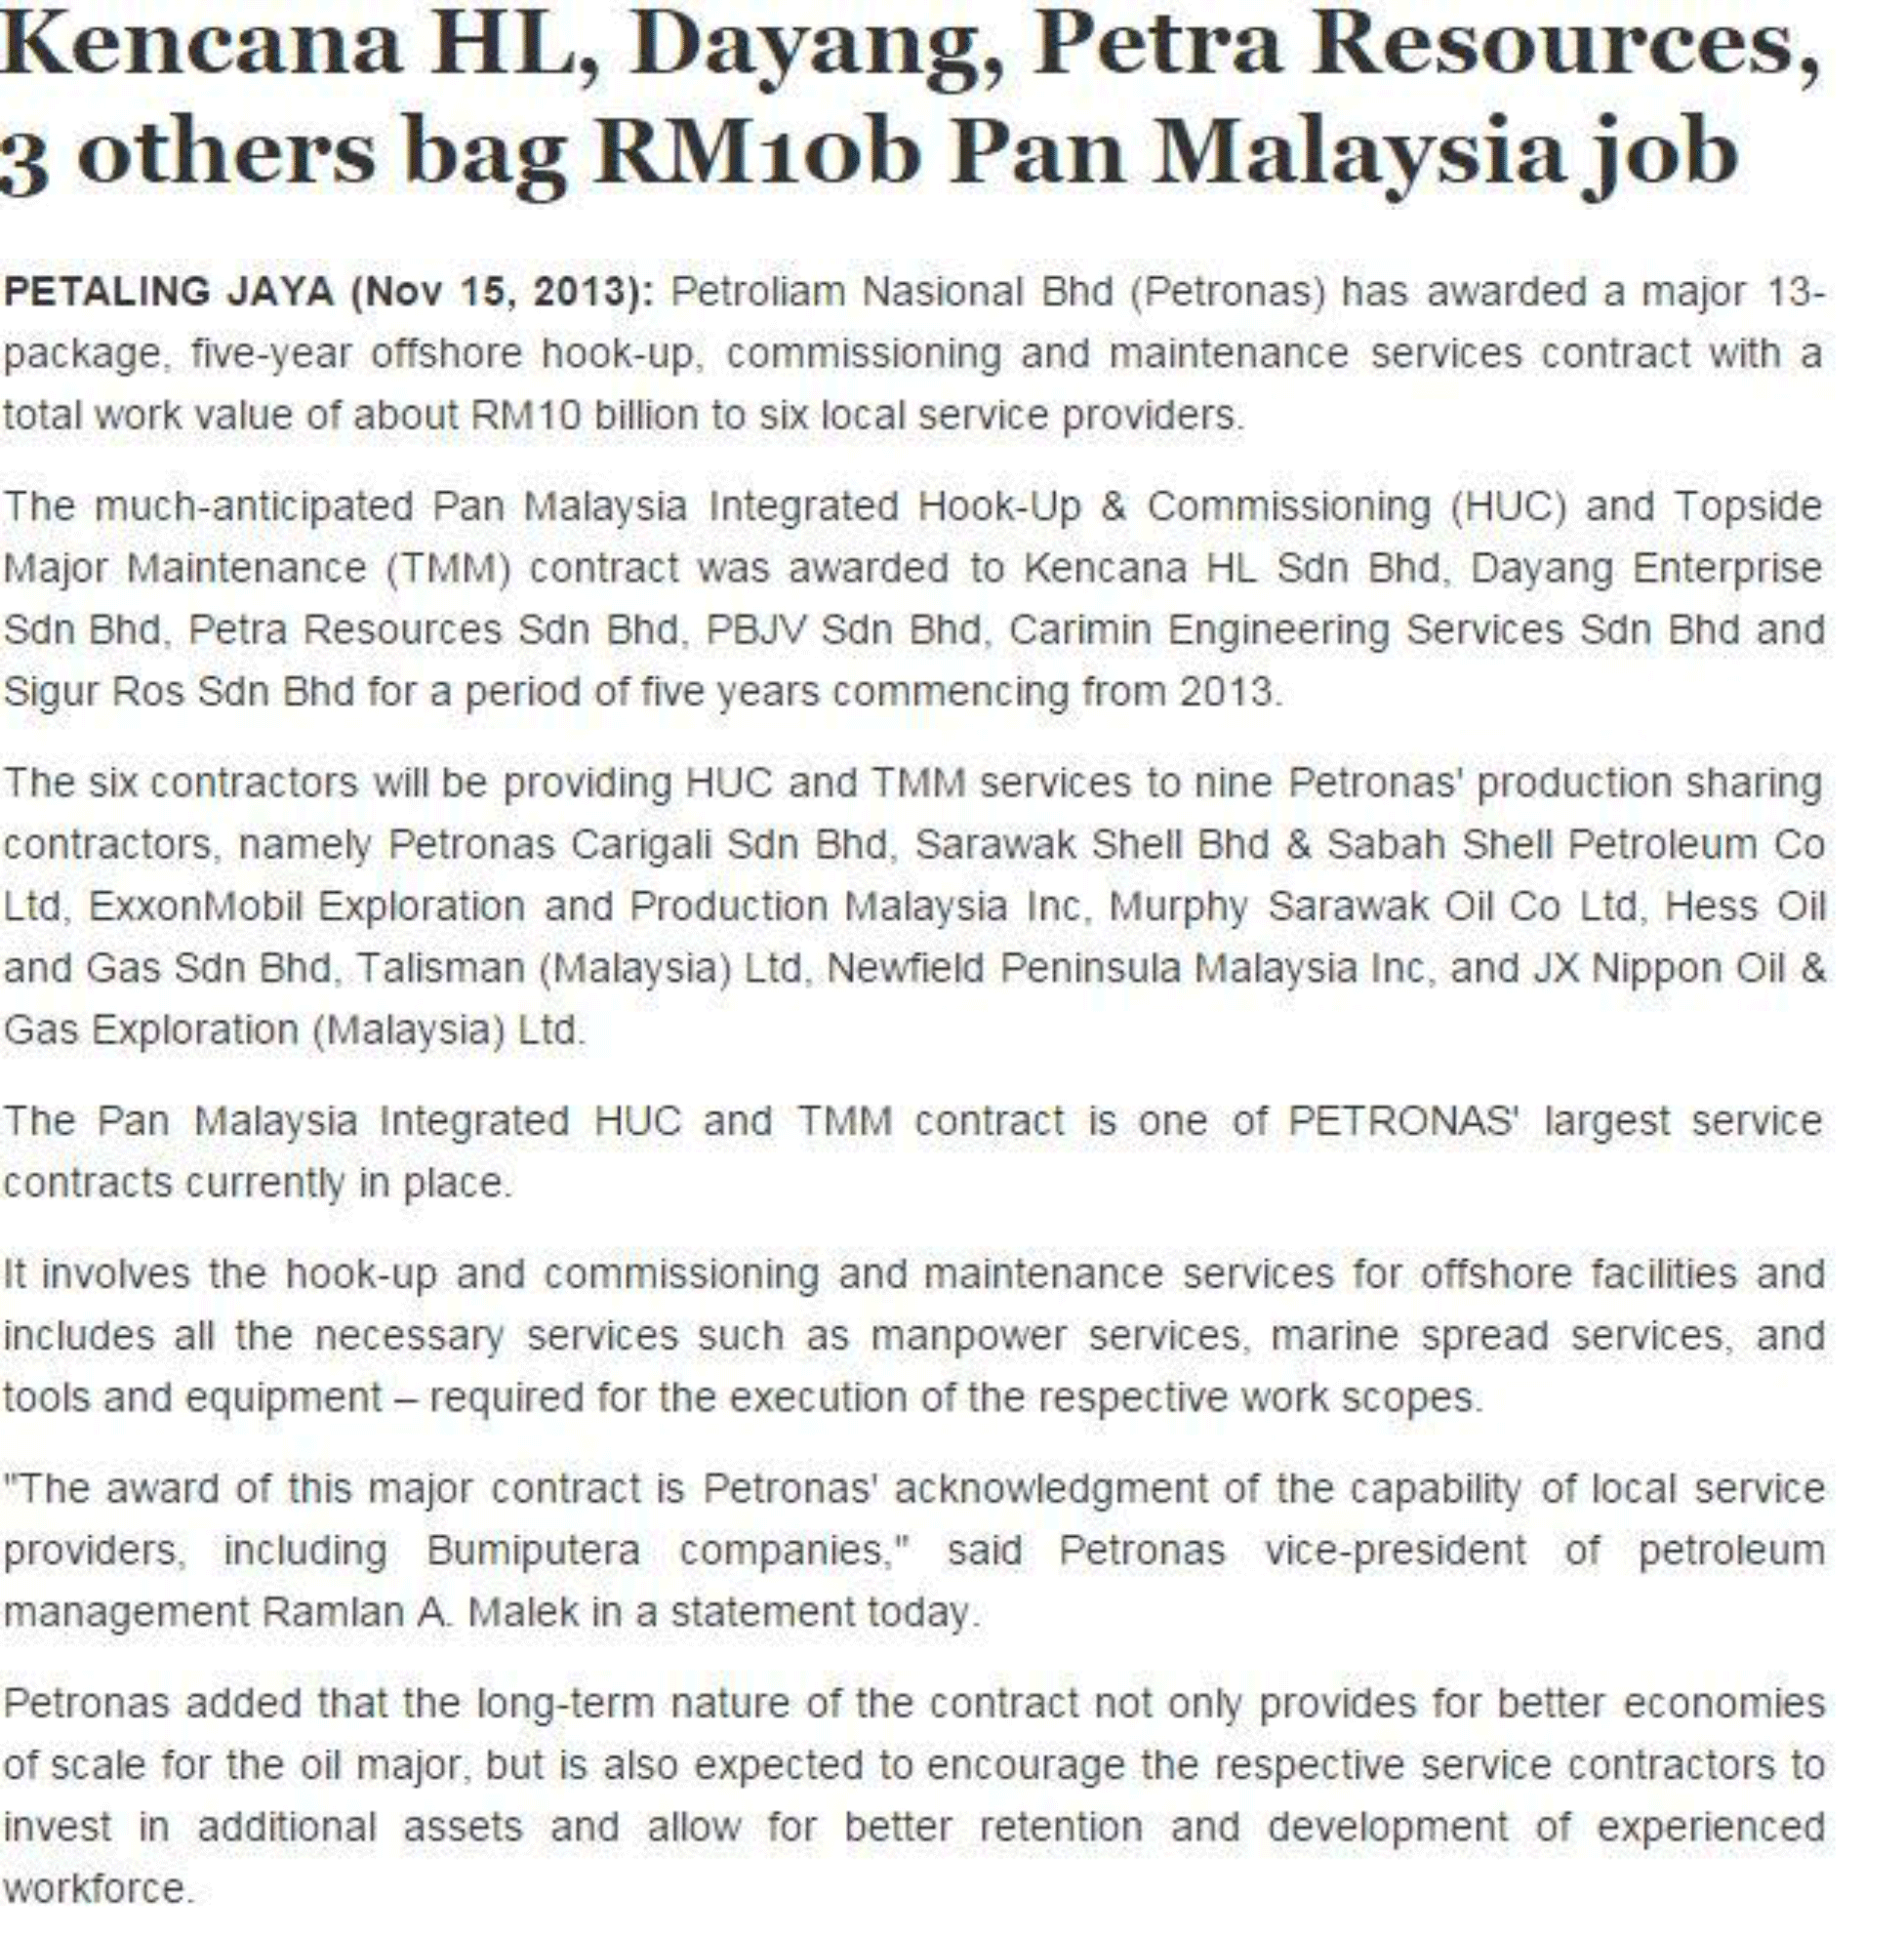 The-Sun-Daily---Kencana-HL,-Dayang,-Petra-Resources,-3-others-bag-RM-10b-Pan-Malaysia-job-(151113)-